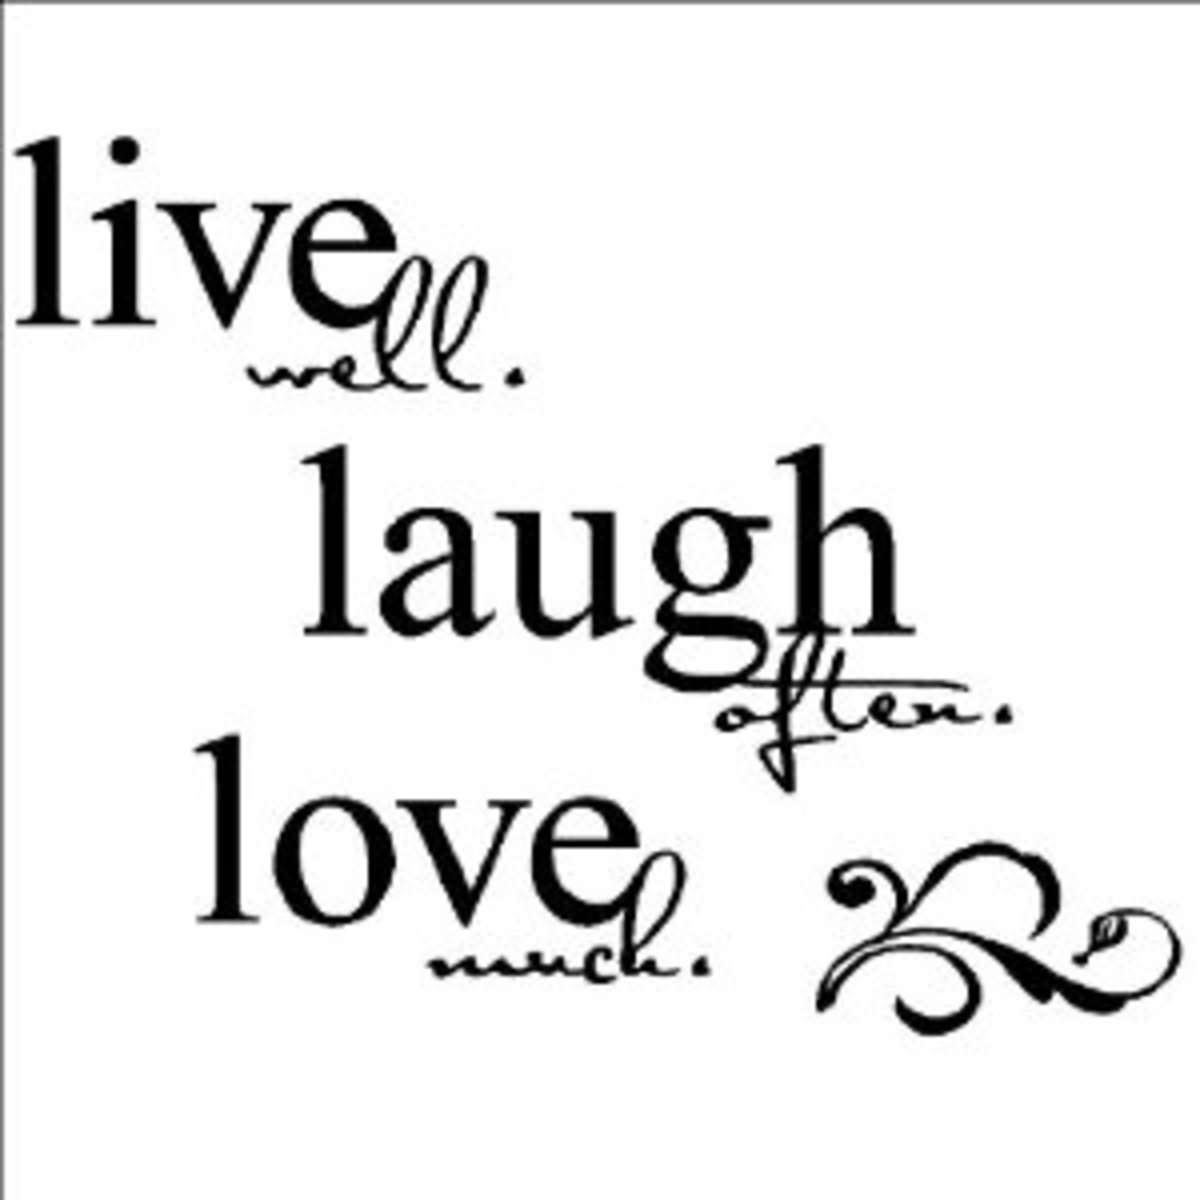 You Can Now Find Live Laugh Love Wall Decor In Almost Every Imaginable Form These Days Aside From The Classic Vinyl Lettering